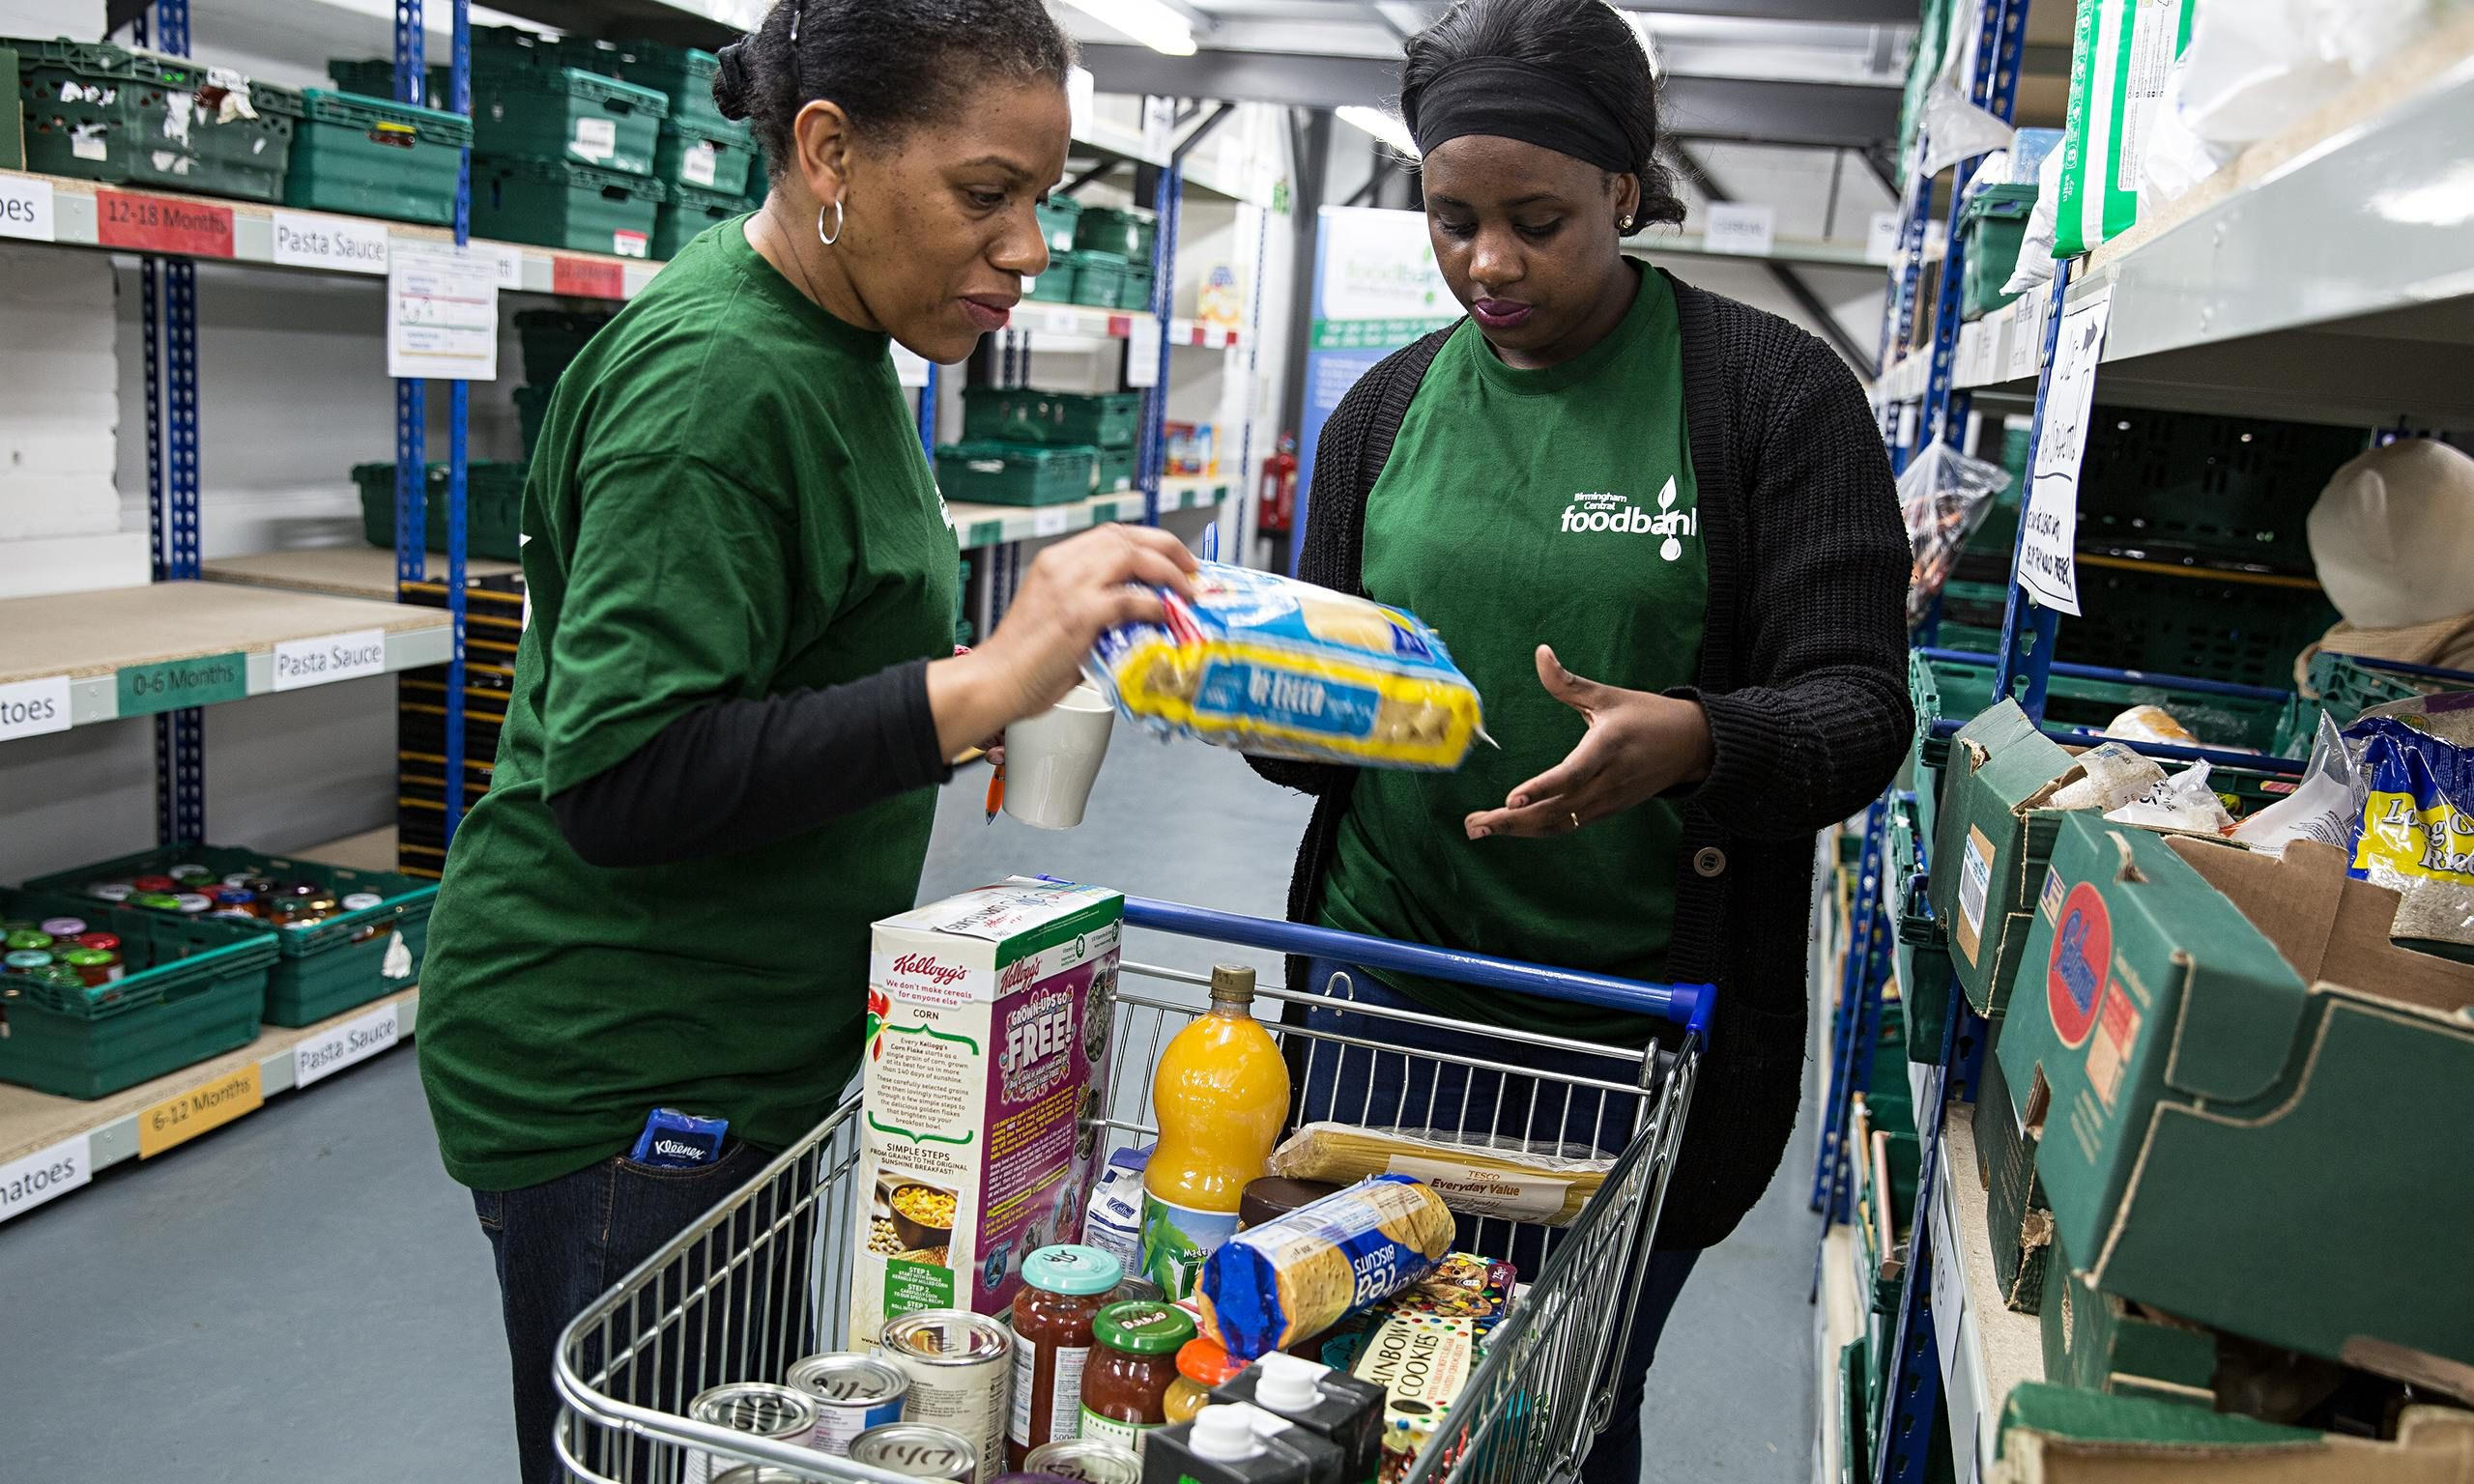 All-party parliamentary inquiry, co-chaired by Labour's Frank Field, finds evidence behind growth in food banks